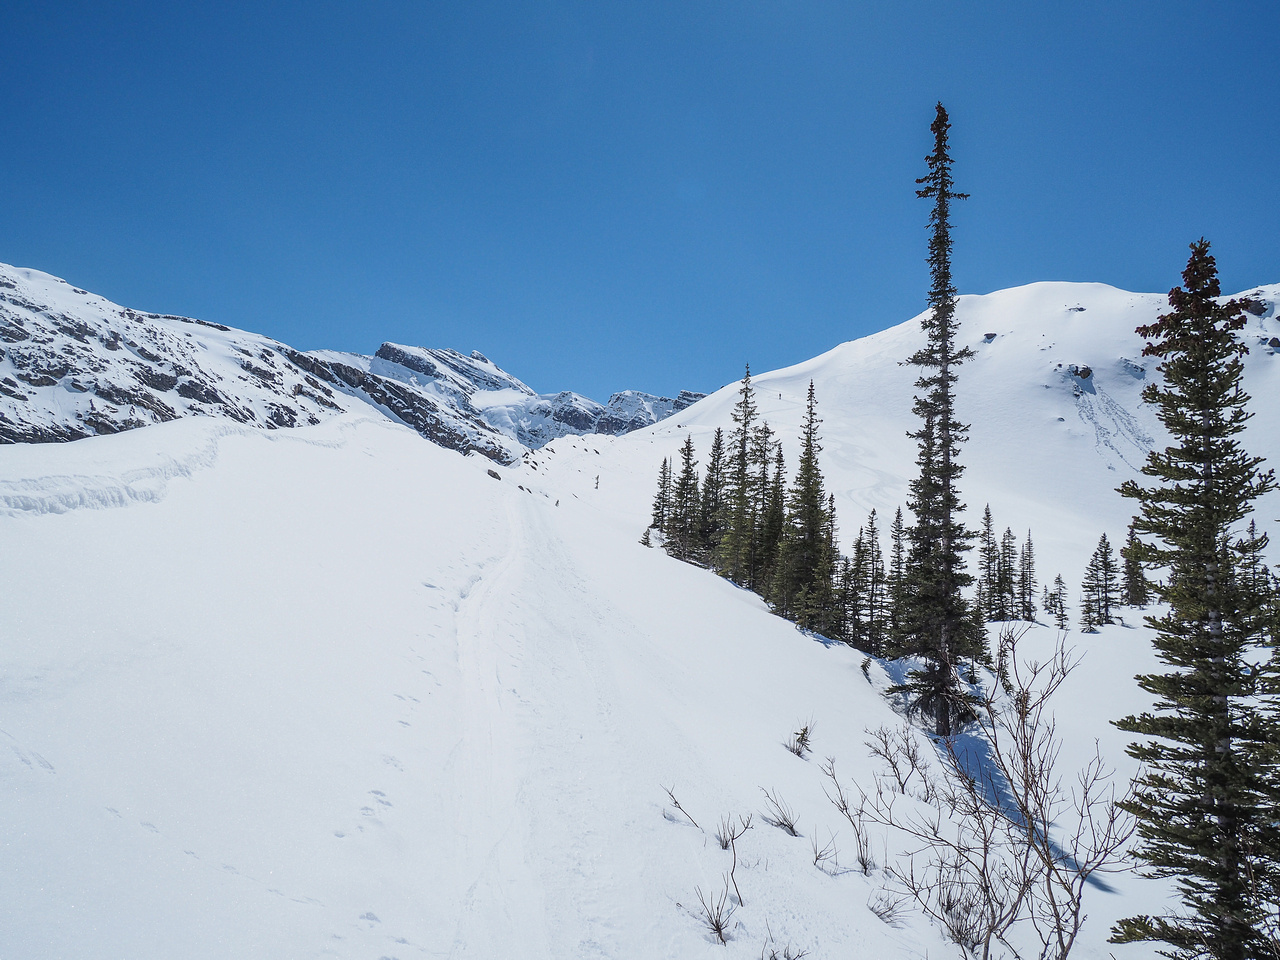 Looking back at the descent of the moraine - ski tracks at center right.